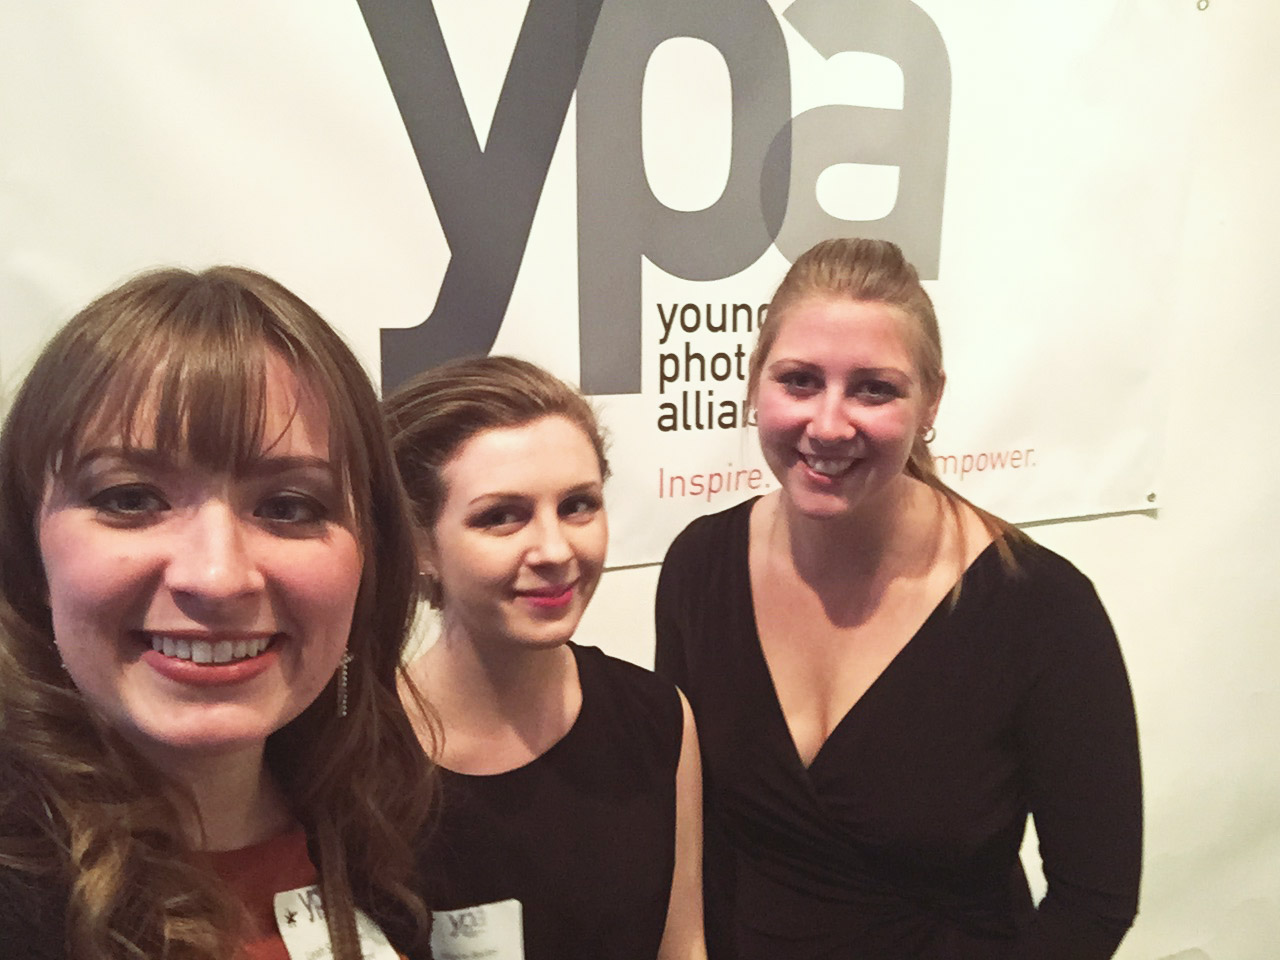 (Left to Right) Myself, Allaire, and Mariah at the  Boundaries  gallery in New York City held at The Art Directors Club on February 24, 2015.